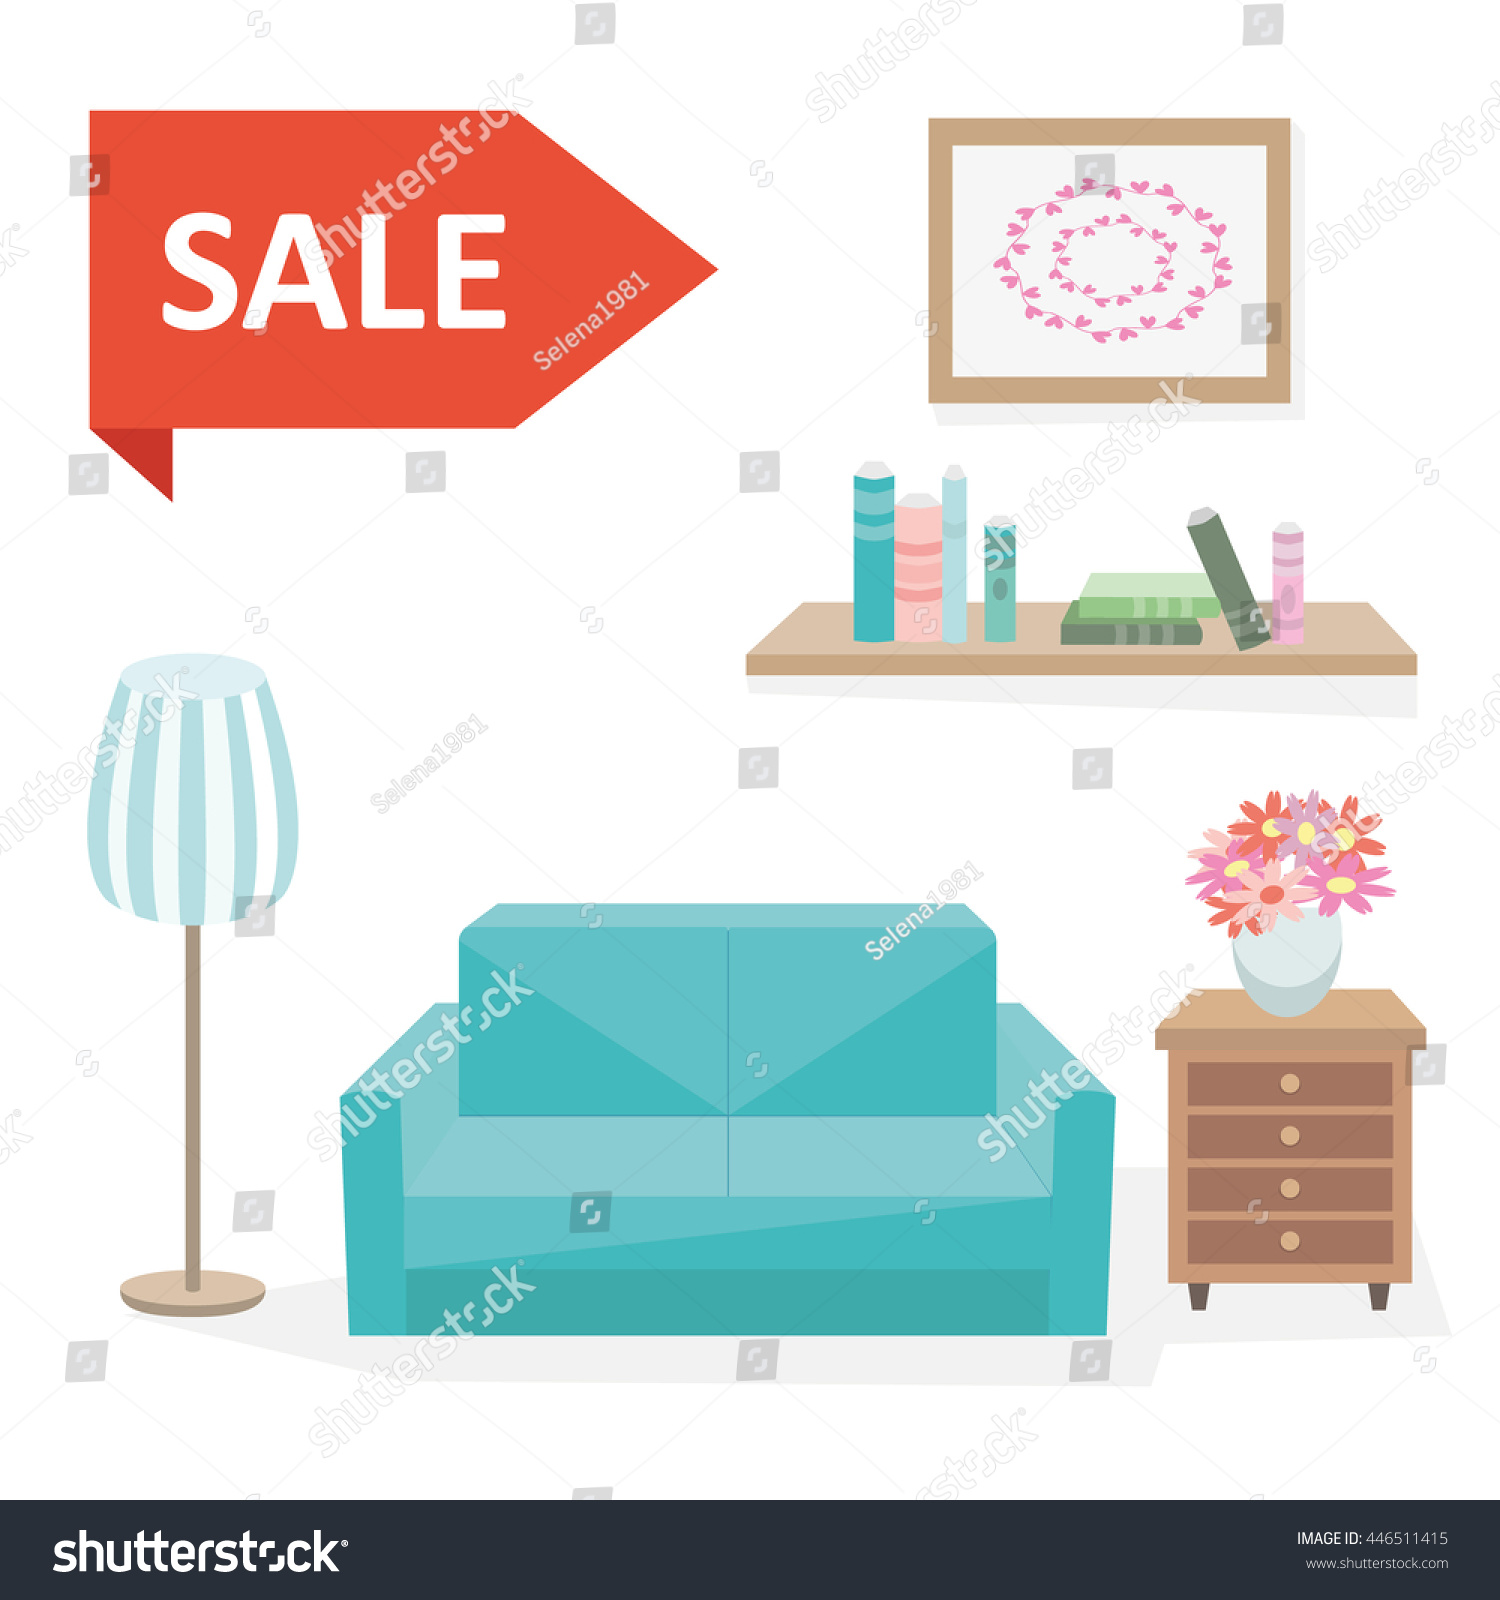 Furniture Store Clip Art Discounts